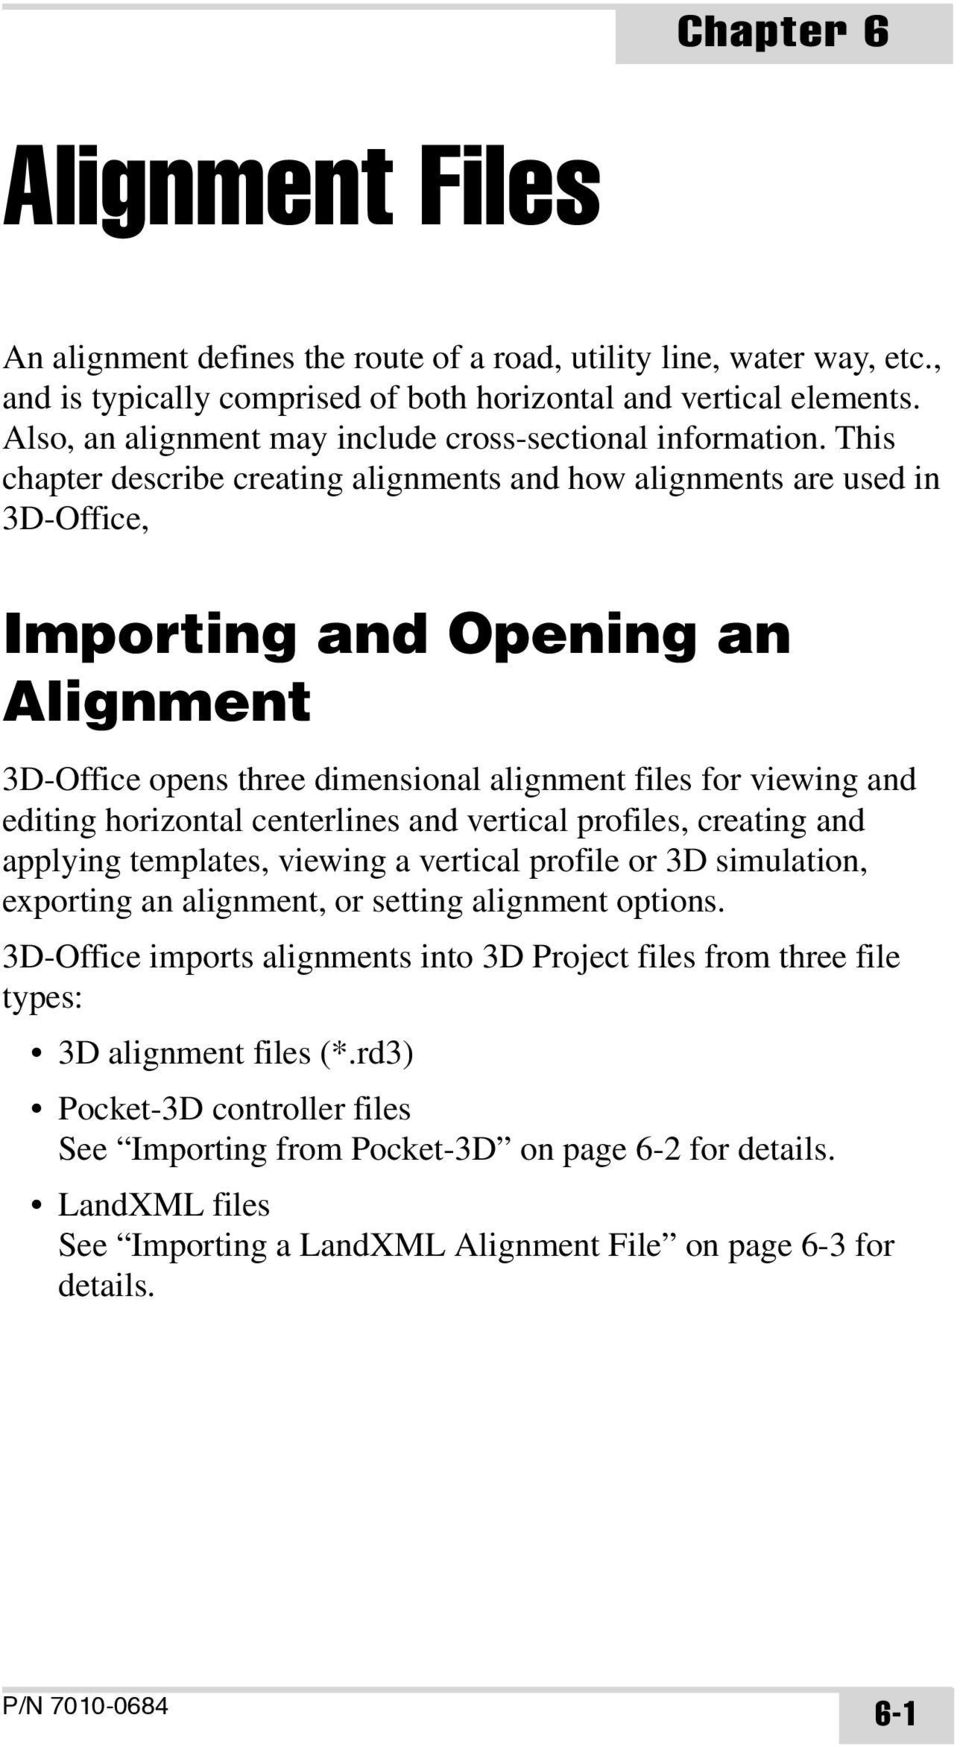 This chapter describe creating alignments and how alignments are used in 3D-Office, Importing and Opening an Alignment 3D-Office opens three dimensional alignment files for viewing and editing